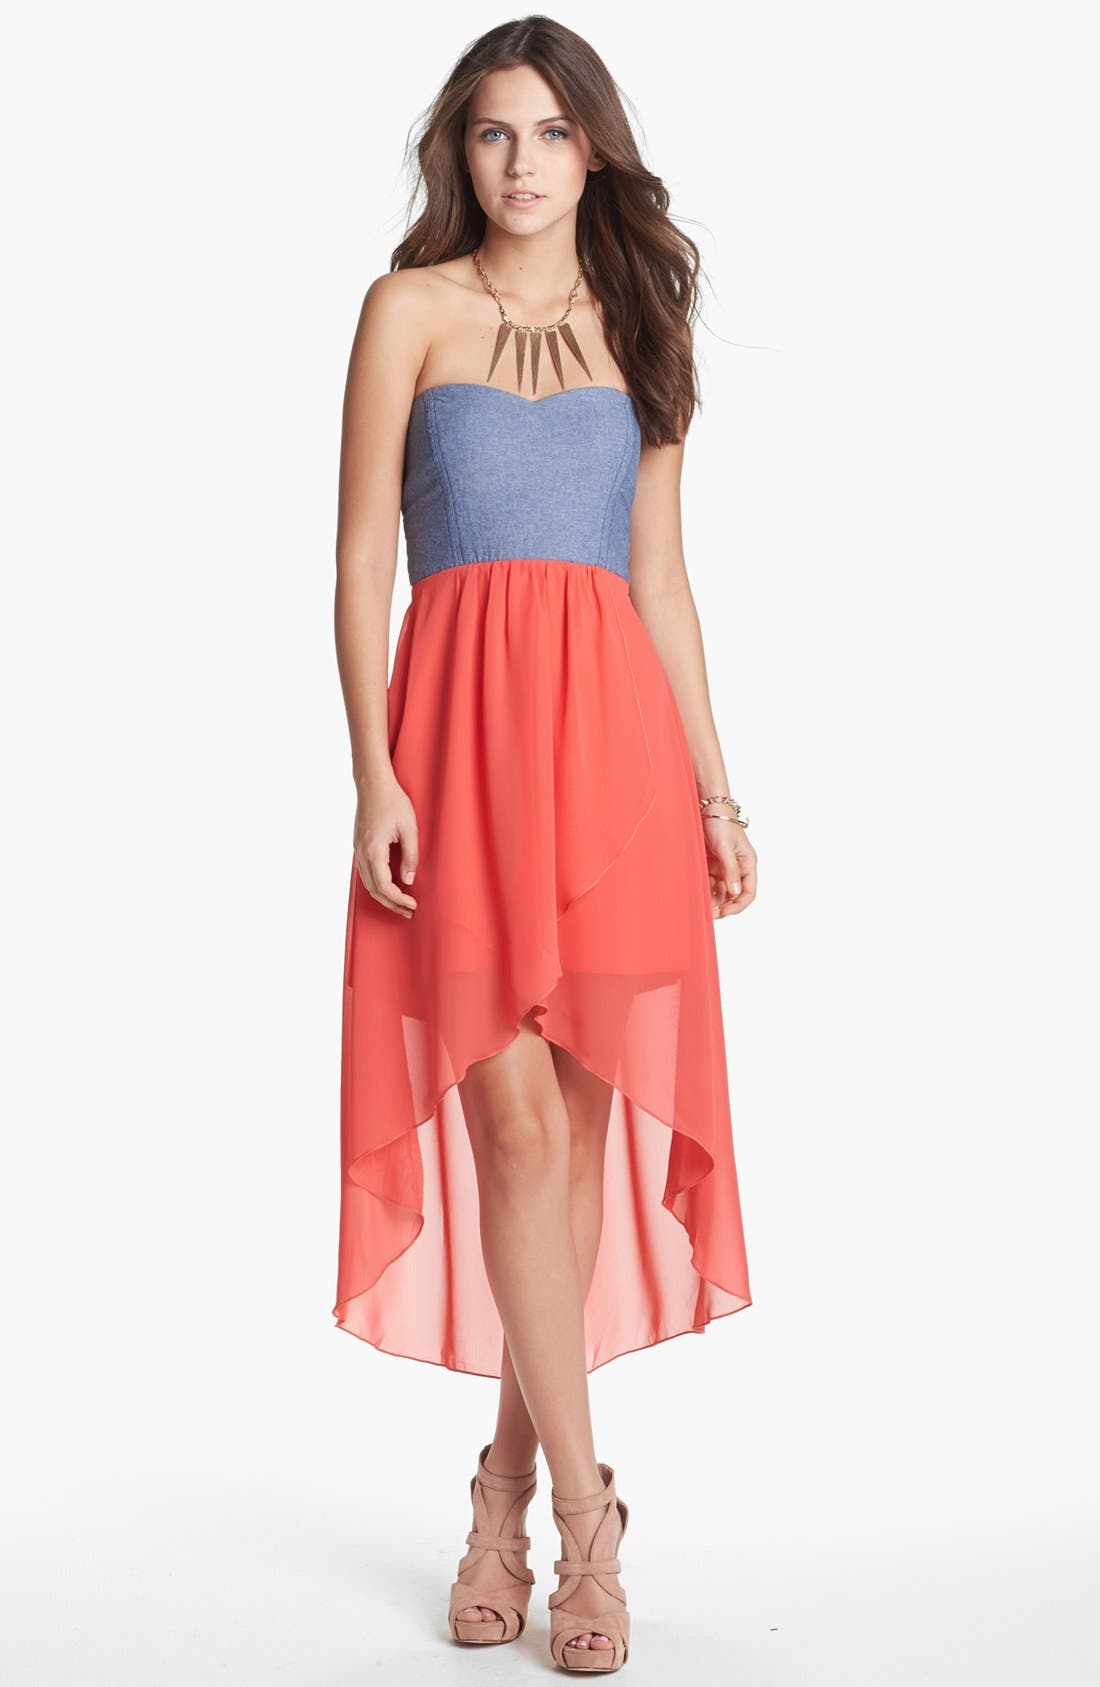 Alternate Image 1 Selected - Trixxi Mixed Media Cutout High/Low Dress (Juniors) (Online Only)